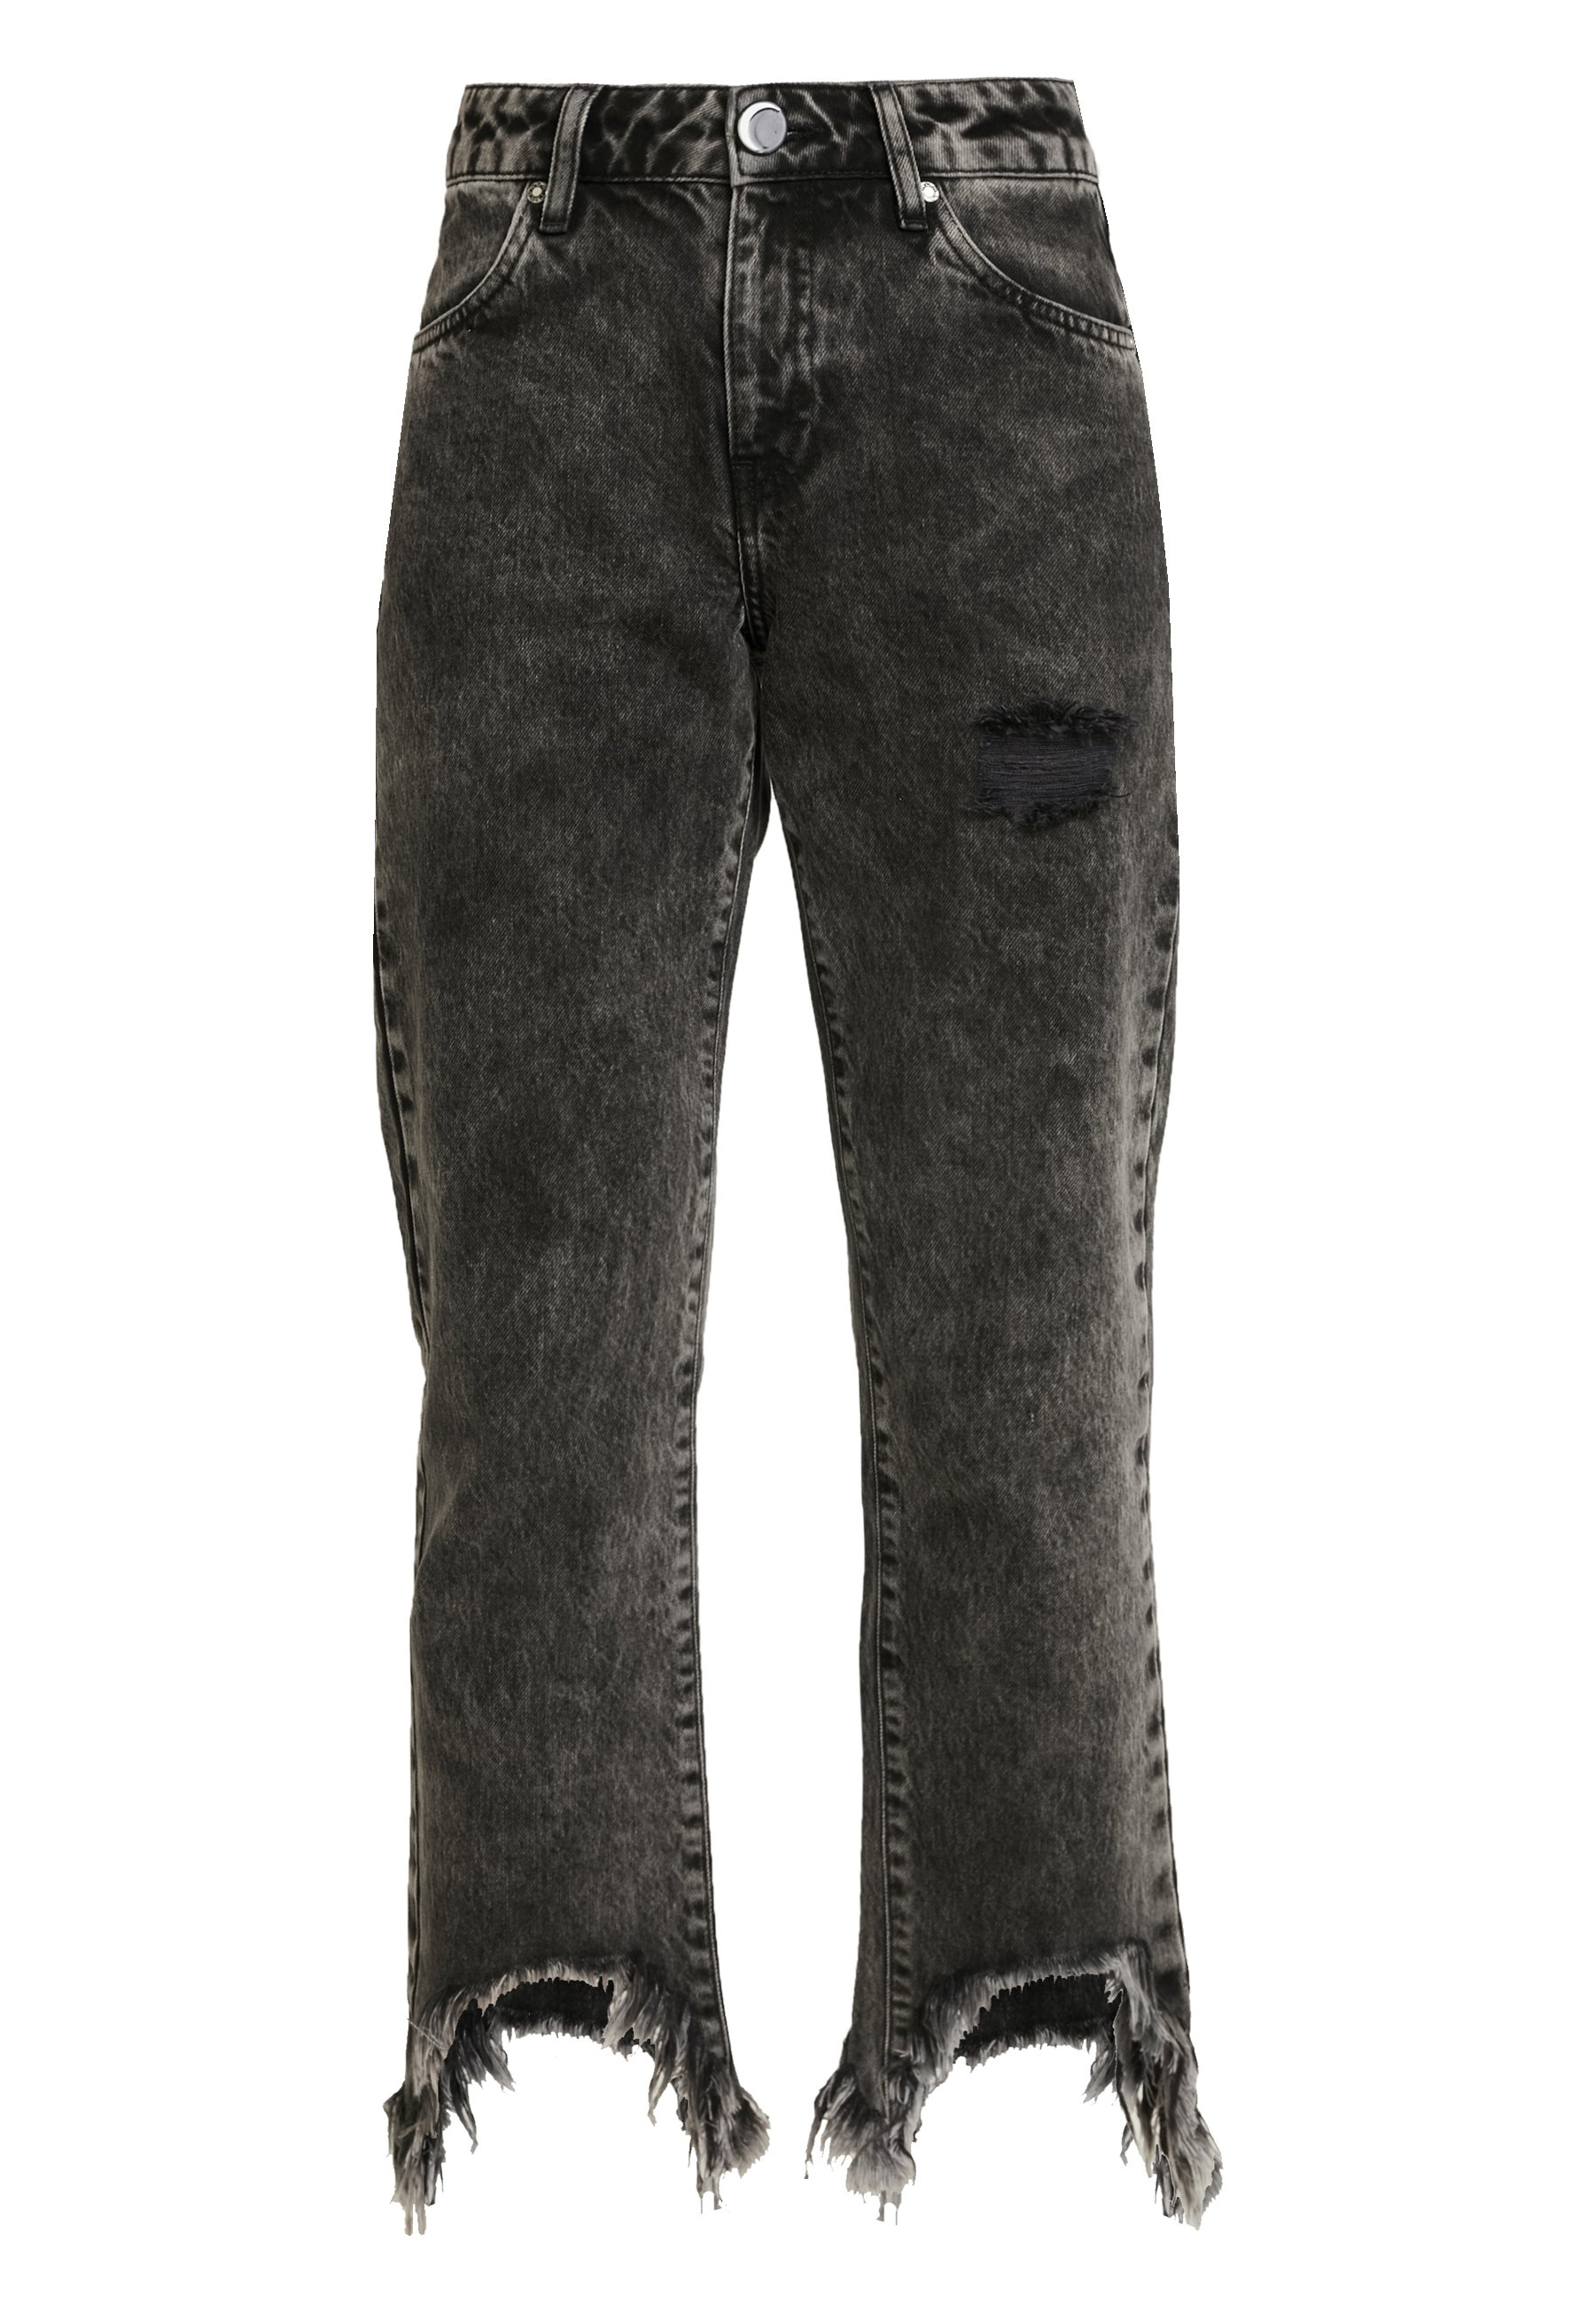 NGHTBRD WASHED OUT VOODOOCHILD - Jeans straight leg - black